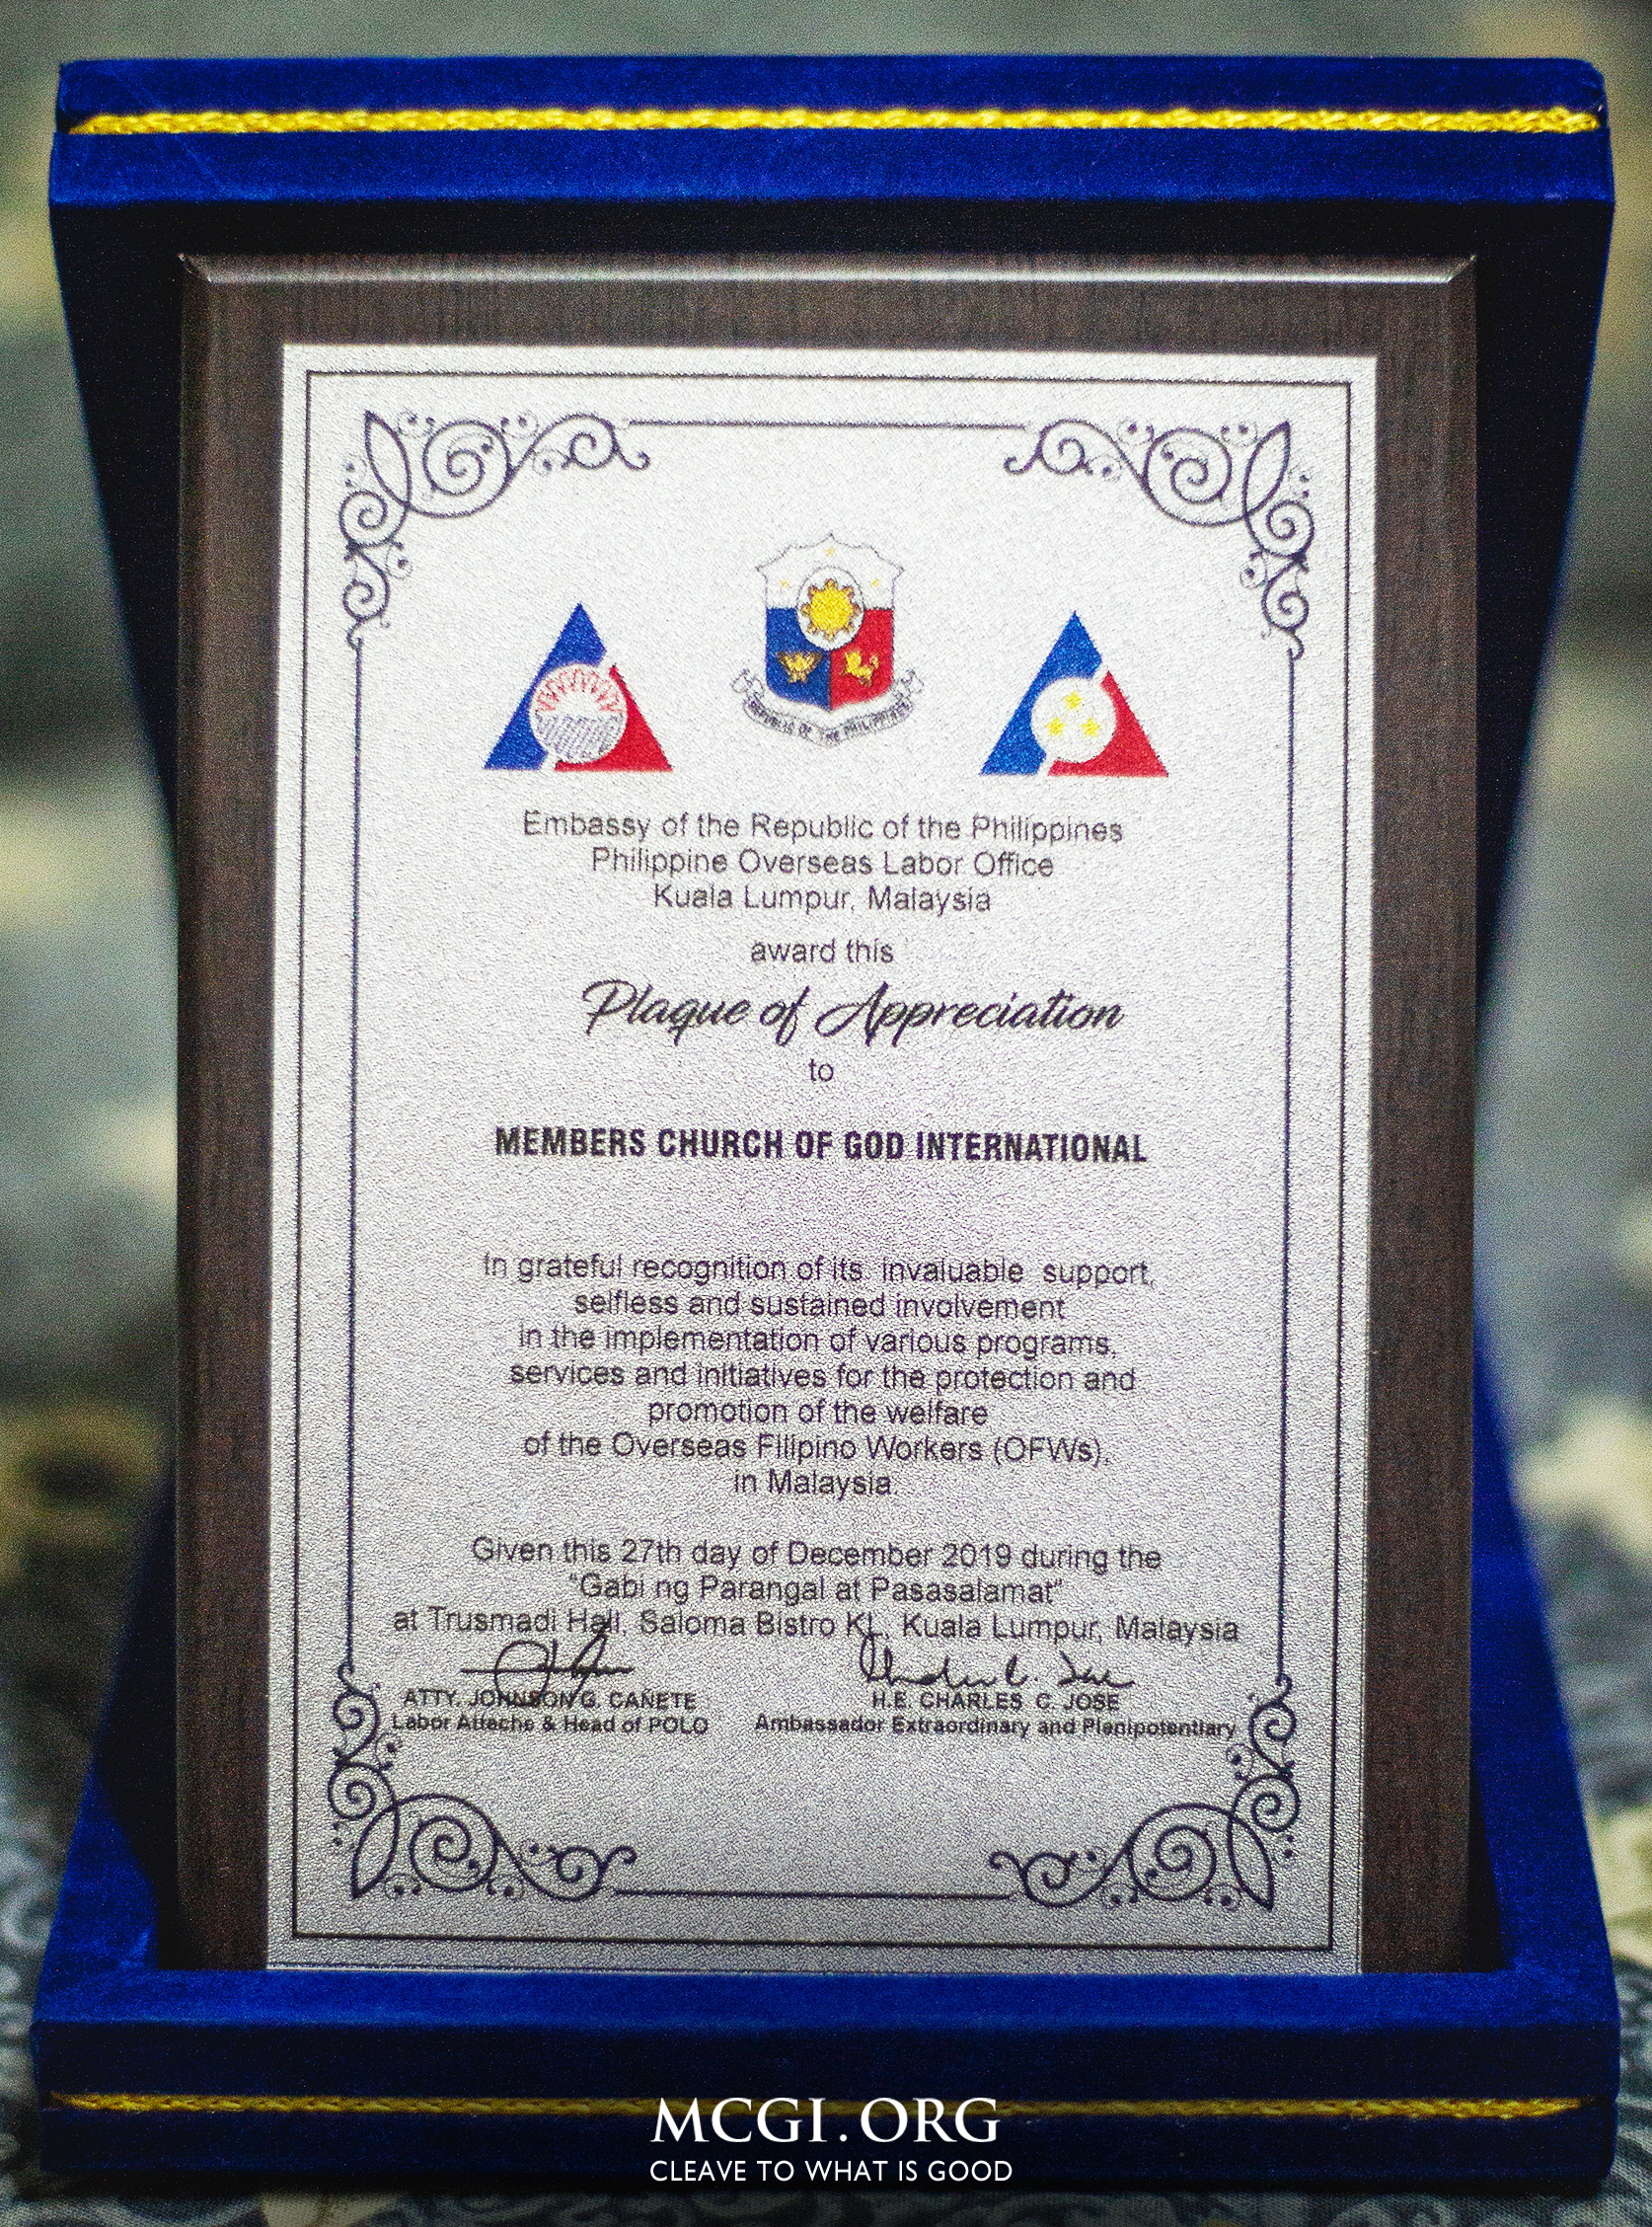 MCGI Receives Plaque of Appreciation from the Embassy of the Republic of the Philippines in Malaysia